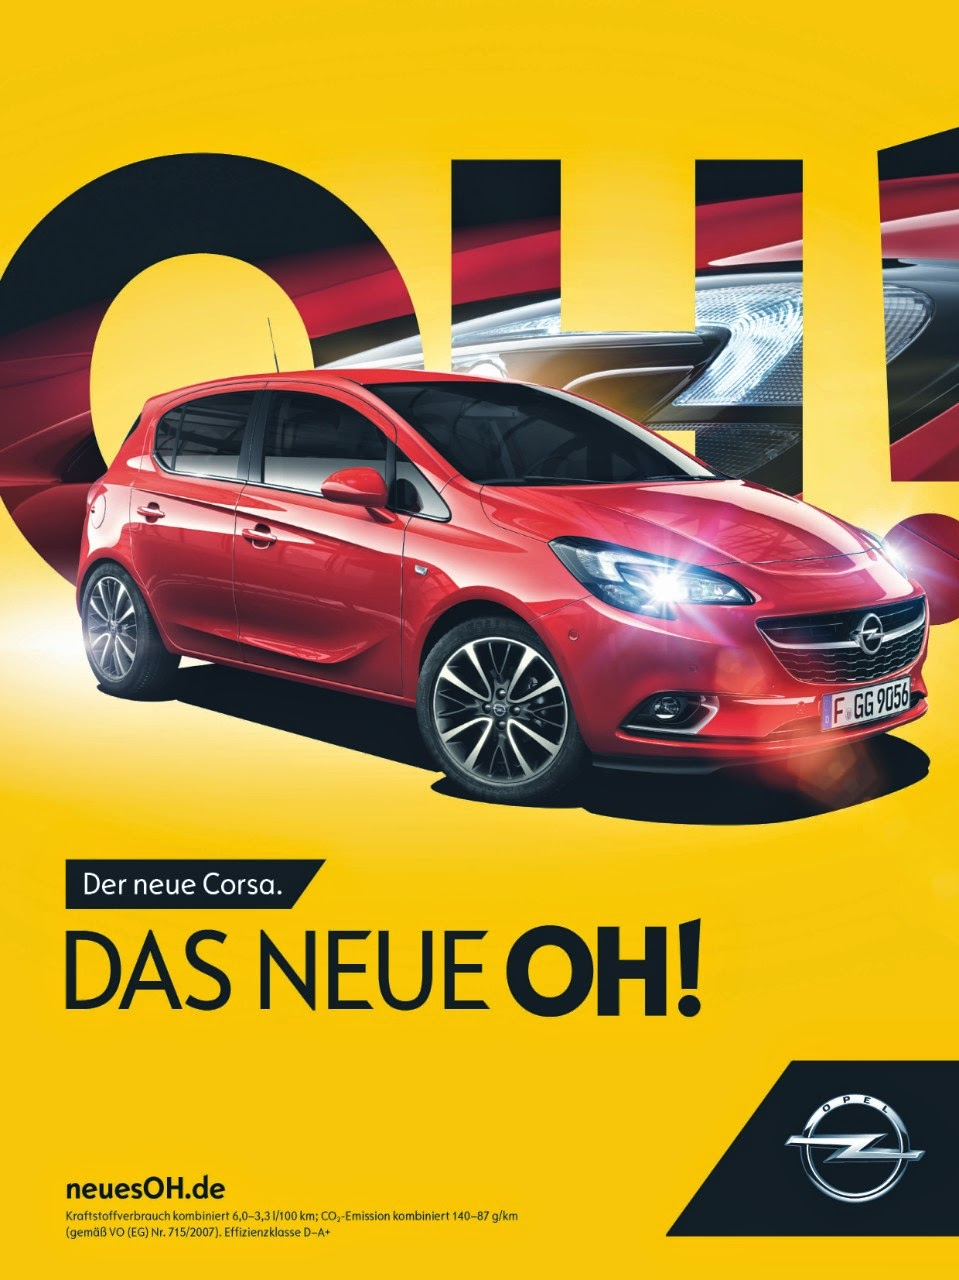 Blog: The New OH! From Opel! Start Of Campaign